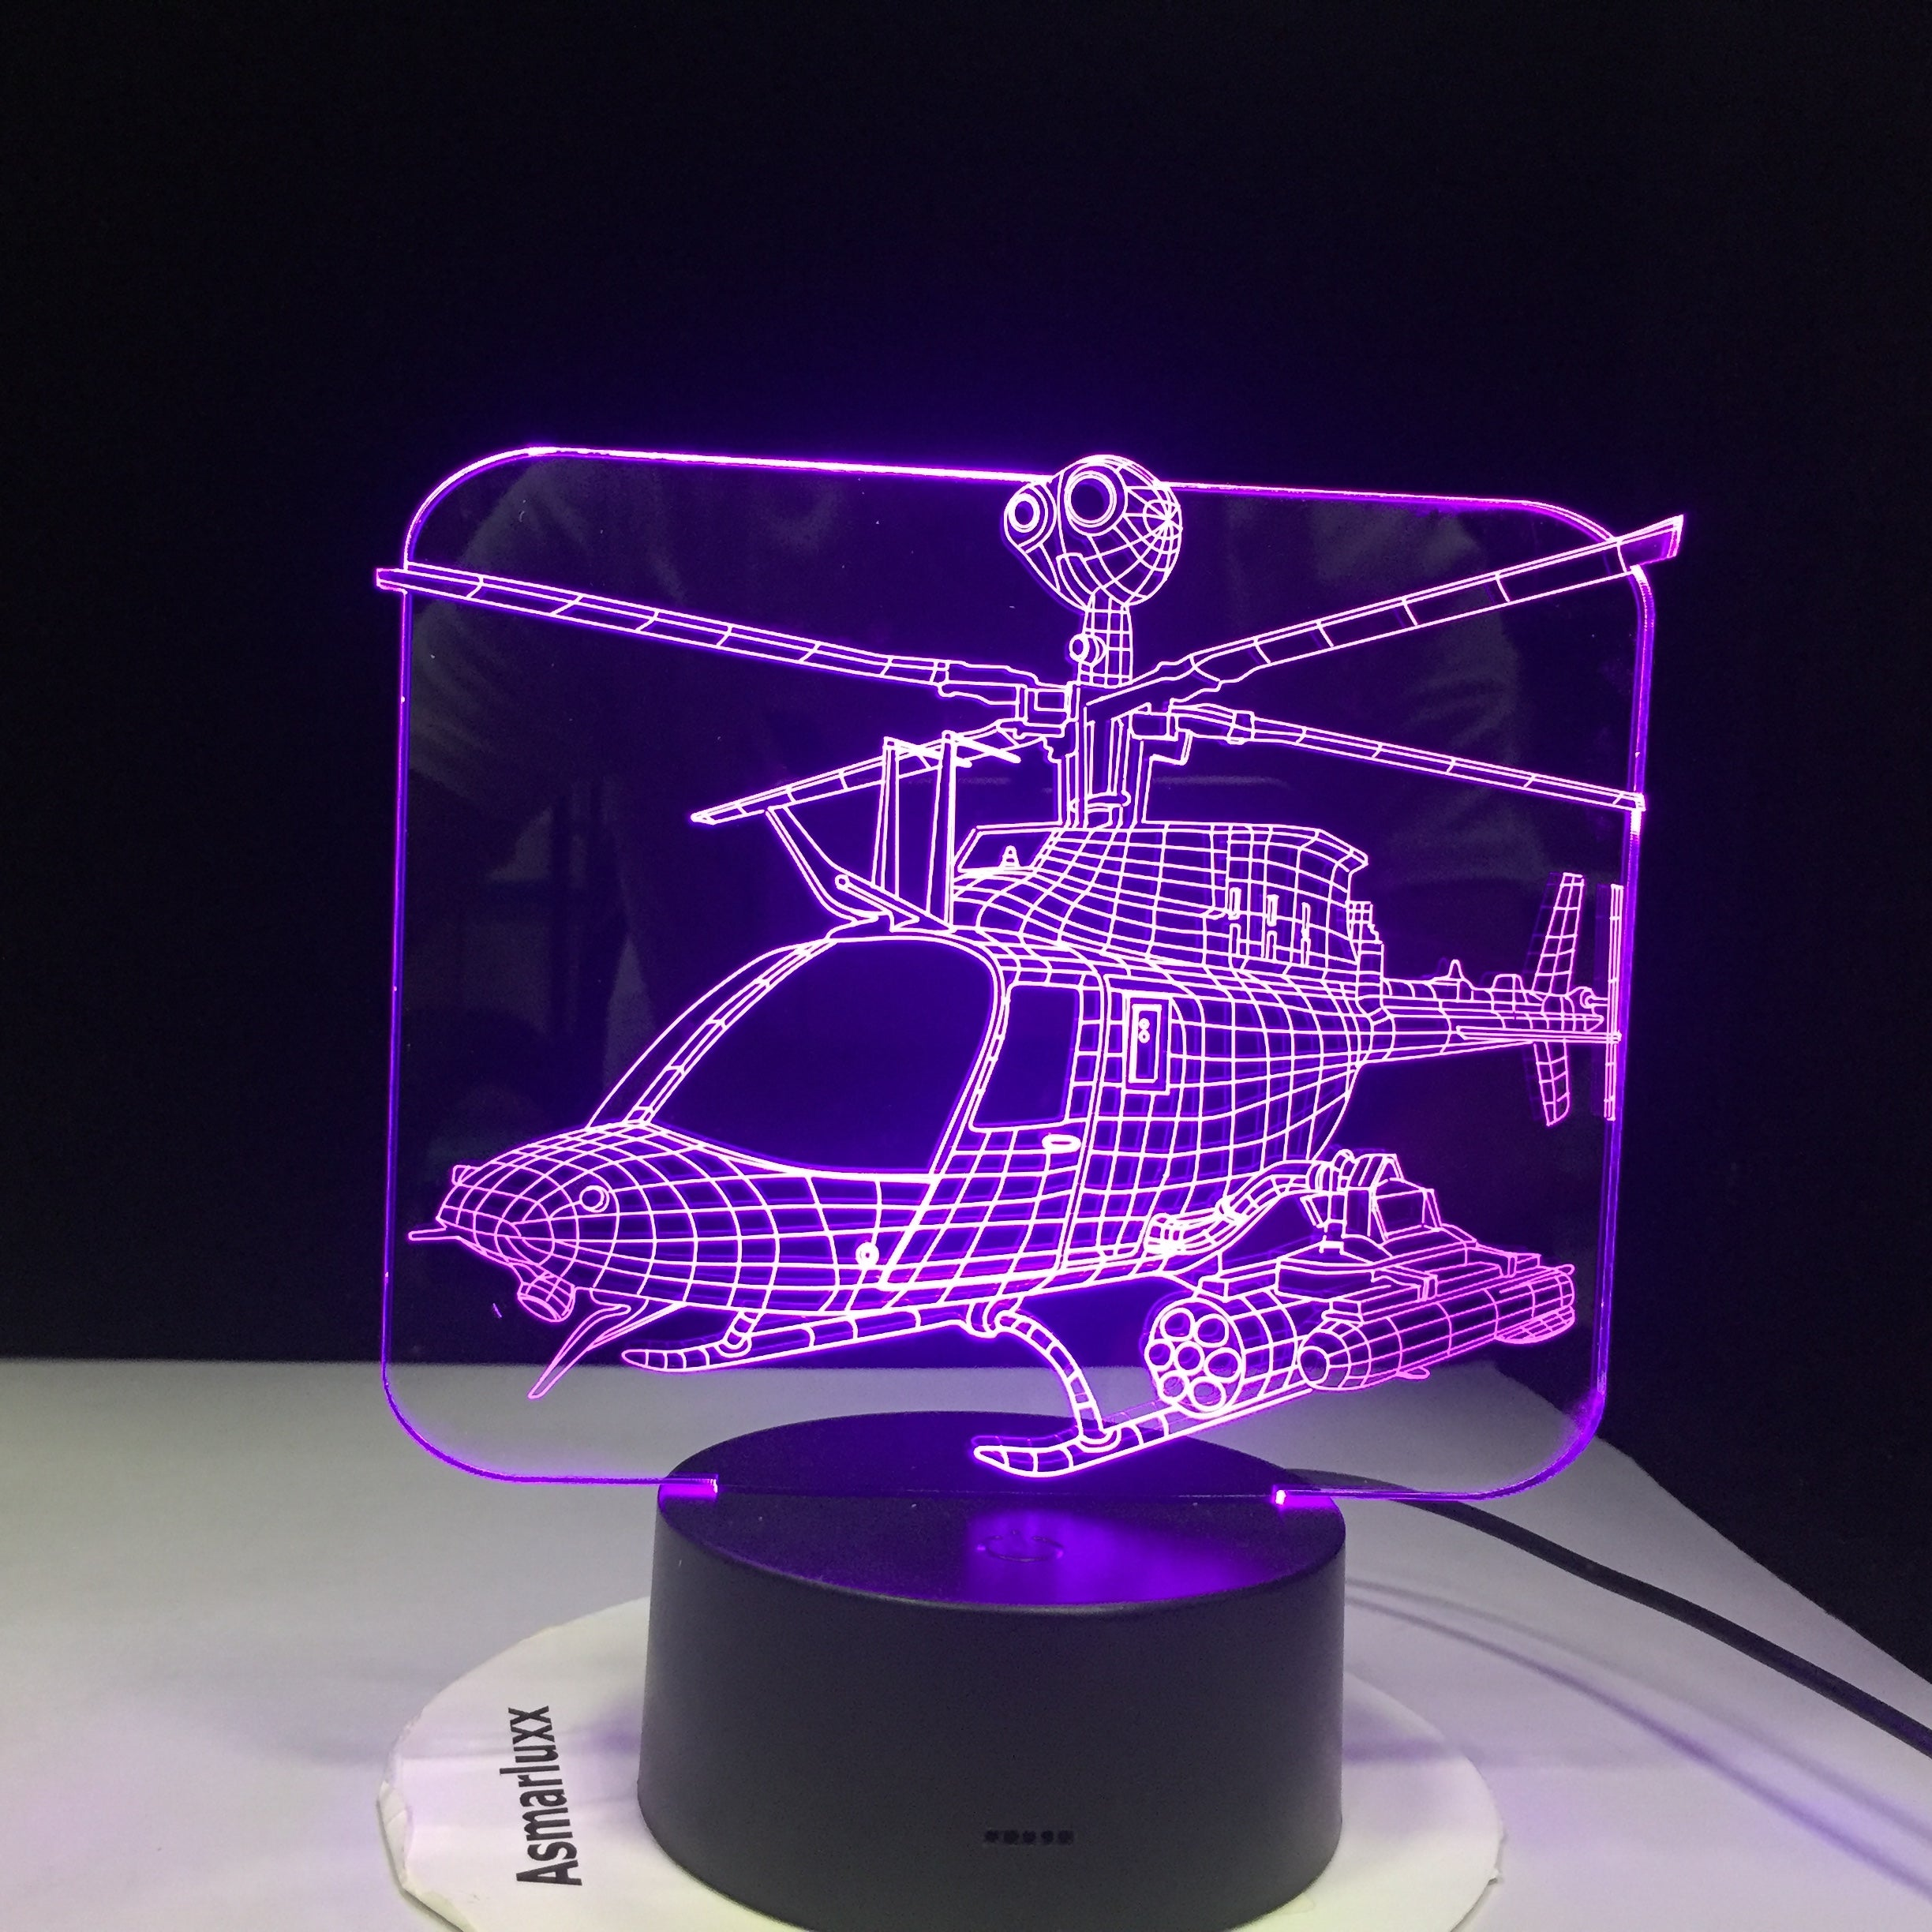 3D Led Home Decor 7 Color Change Helicopter Table Lamp Usb Aircraft Bedside Light Fixture Air Plane Night Light Gifts AW-1143